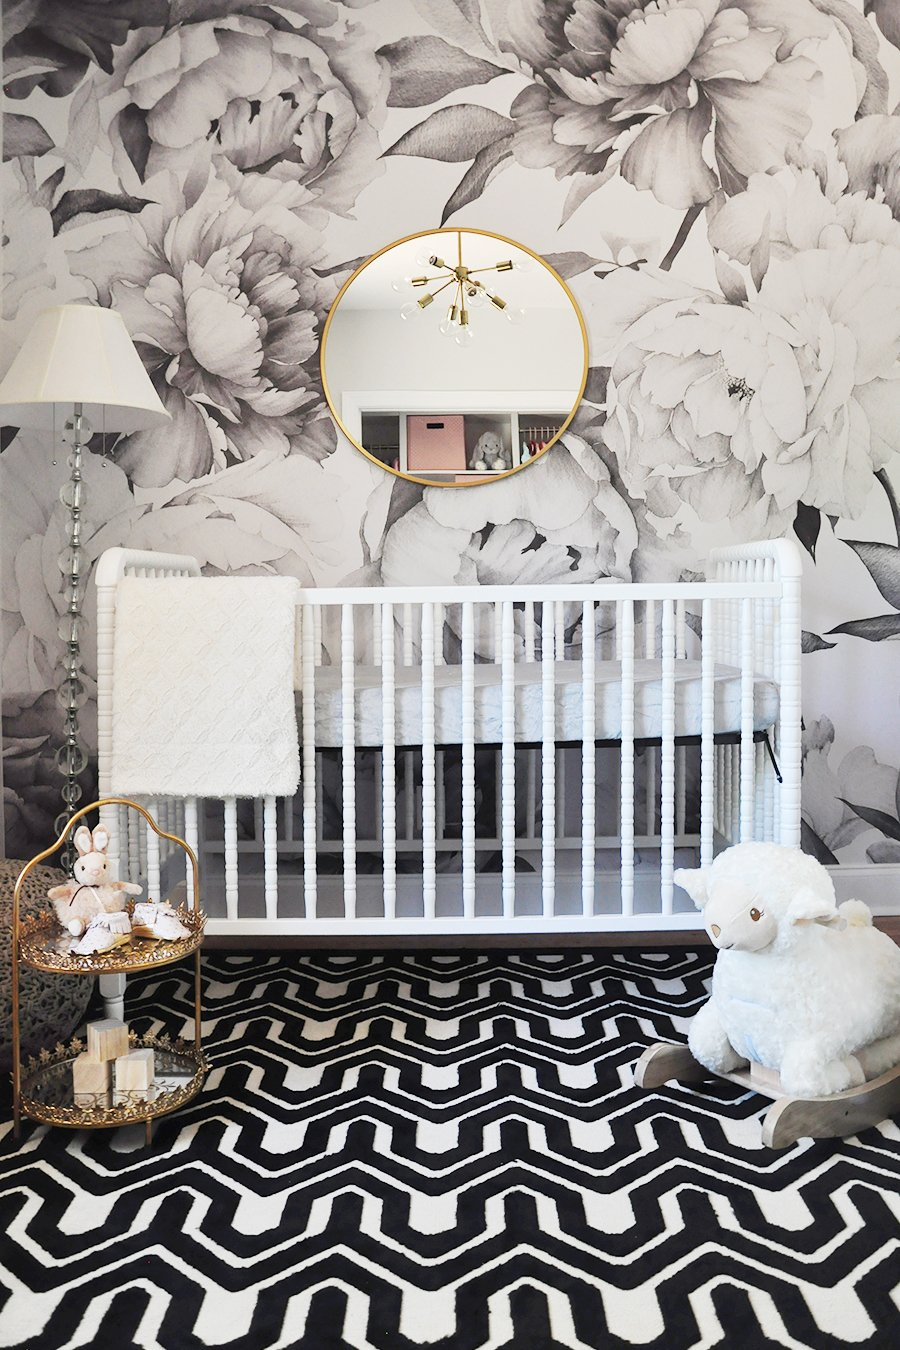 Black and white nursery design by Foxy Oxie